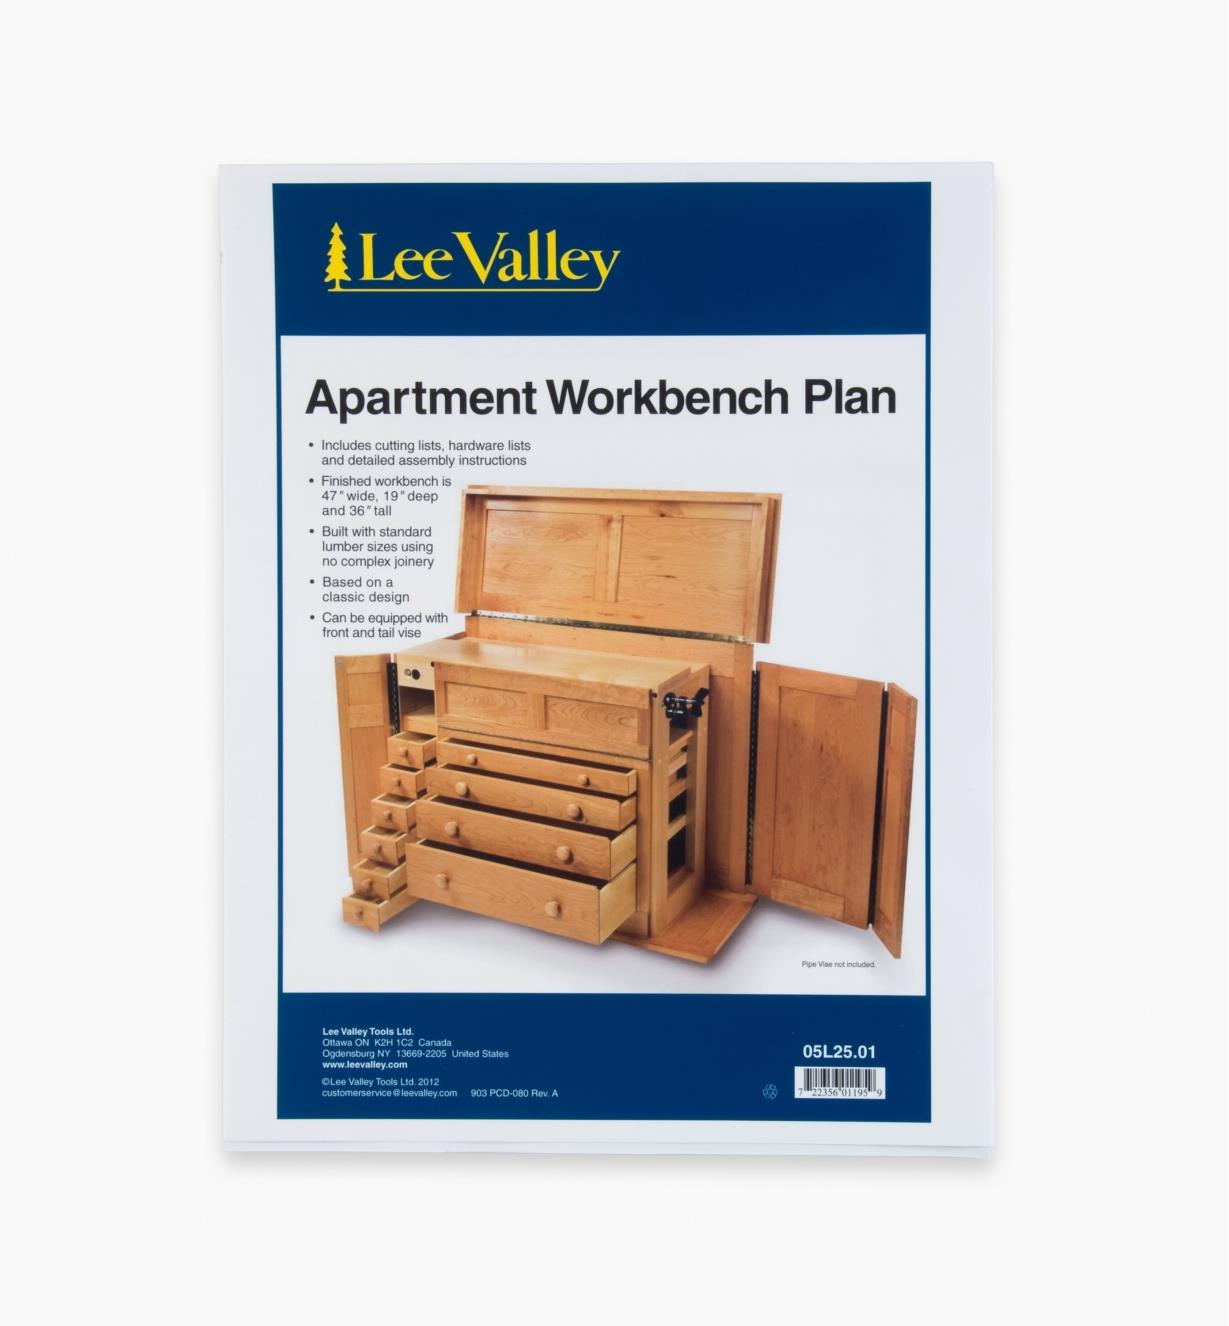 05L2501 - LV Apartment Workbench Plan